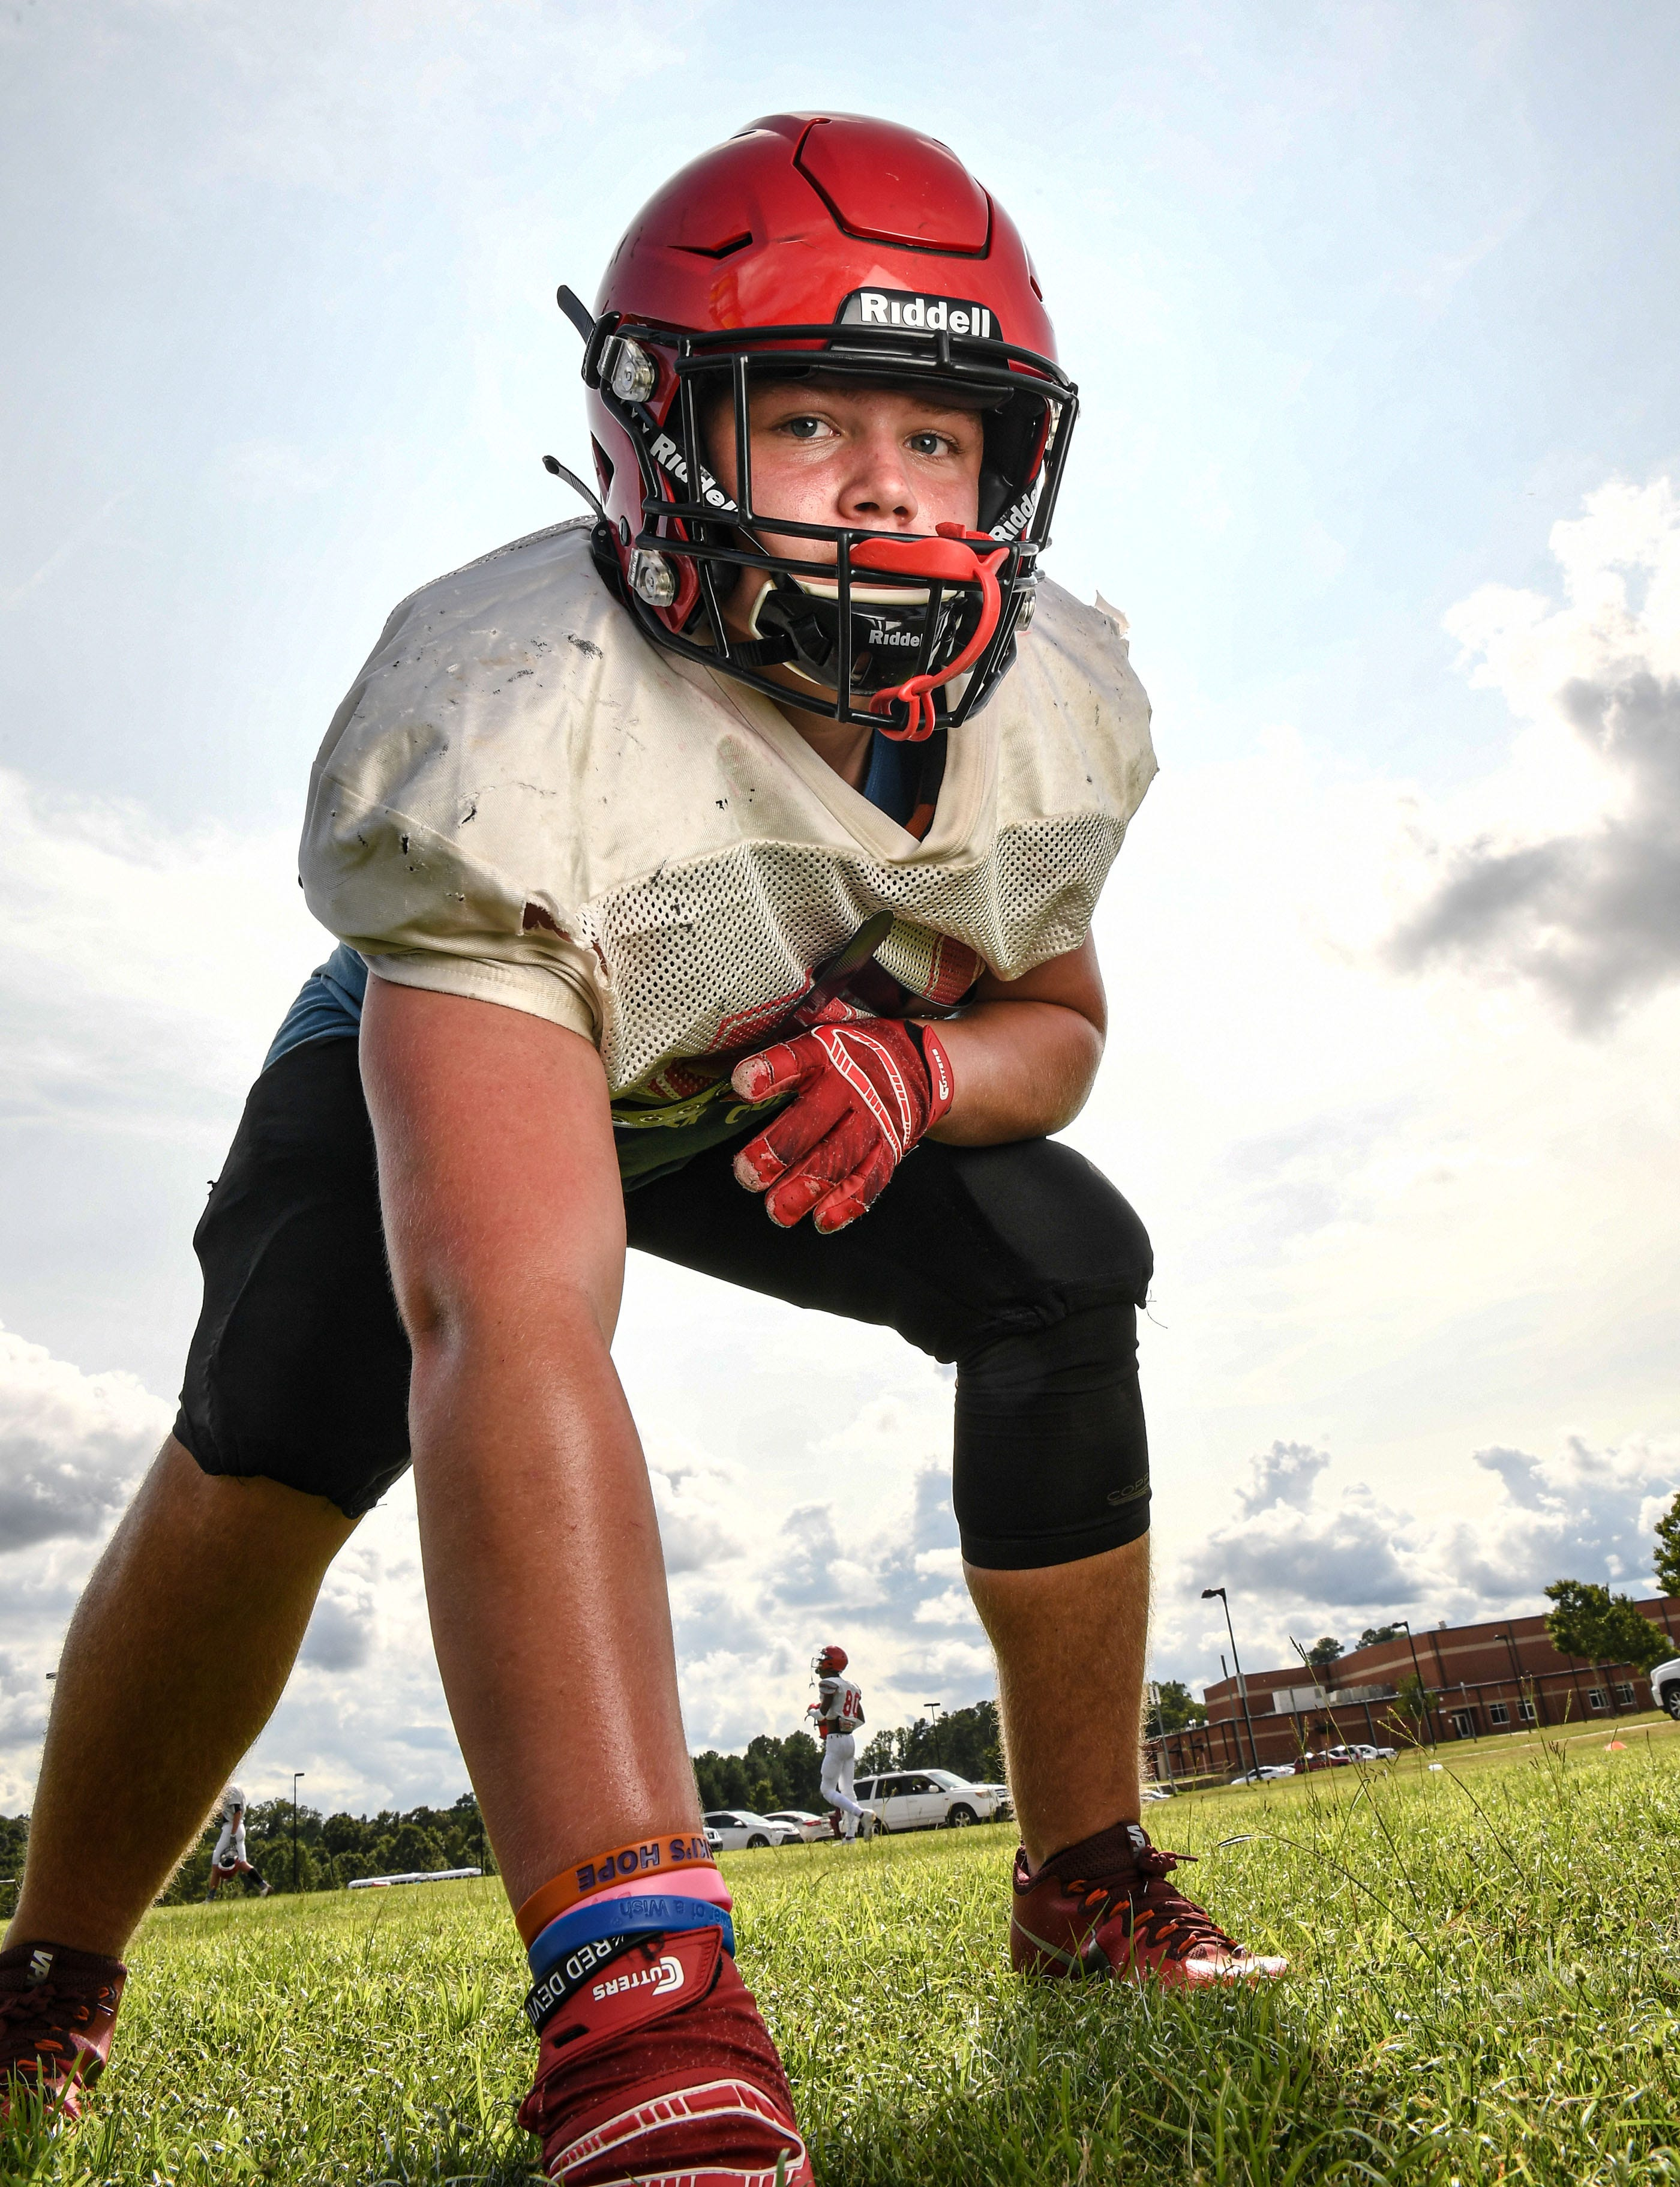 Liberty football linebacker Breylen Cobb plays on the offensive line and linebacker for the Red Devils in Liberty, S.C. September 2020.